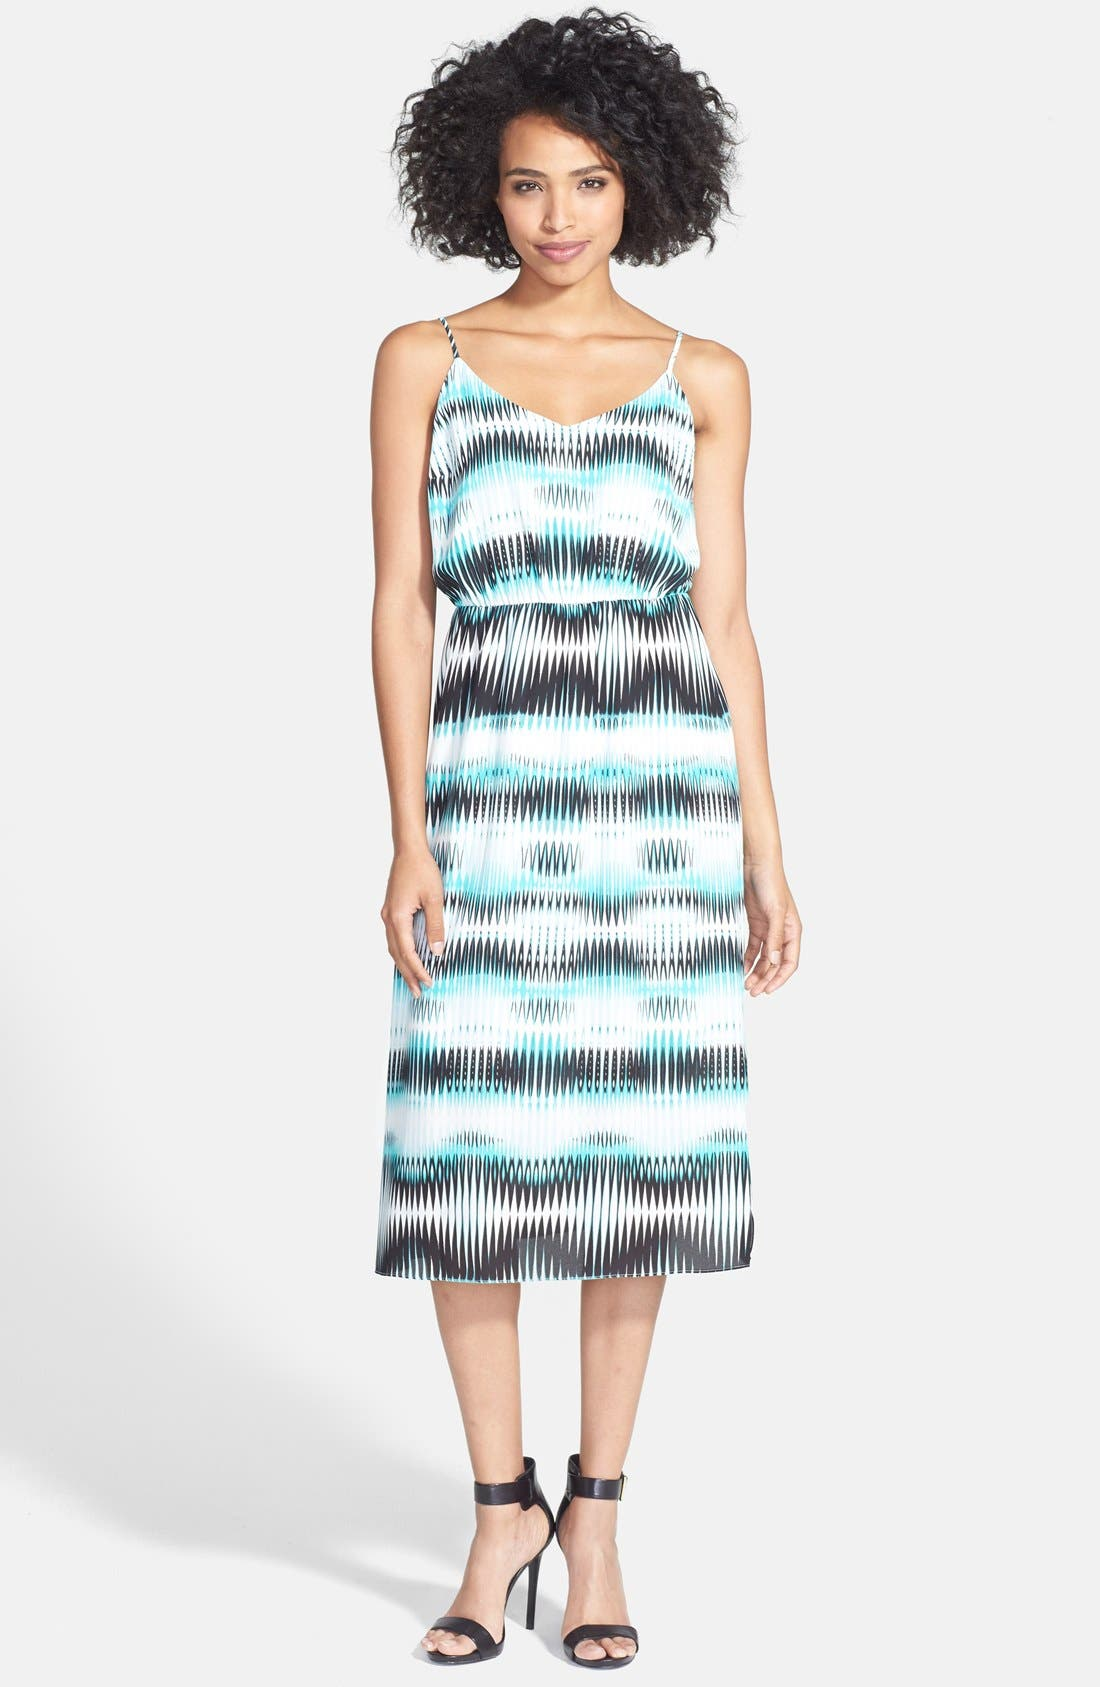 Alternate Image 1 Selected - Vince Camuto 'Linear Echoes' Print Midi Dress